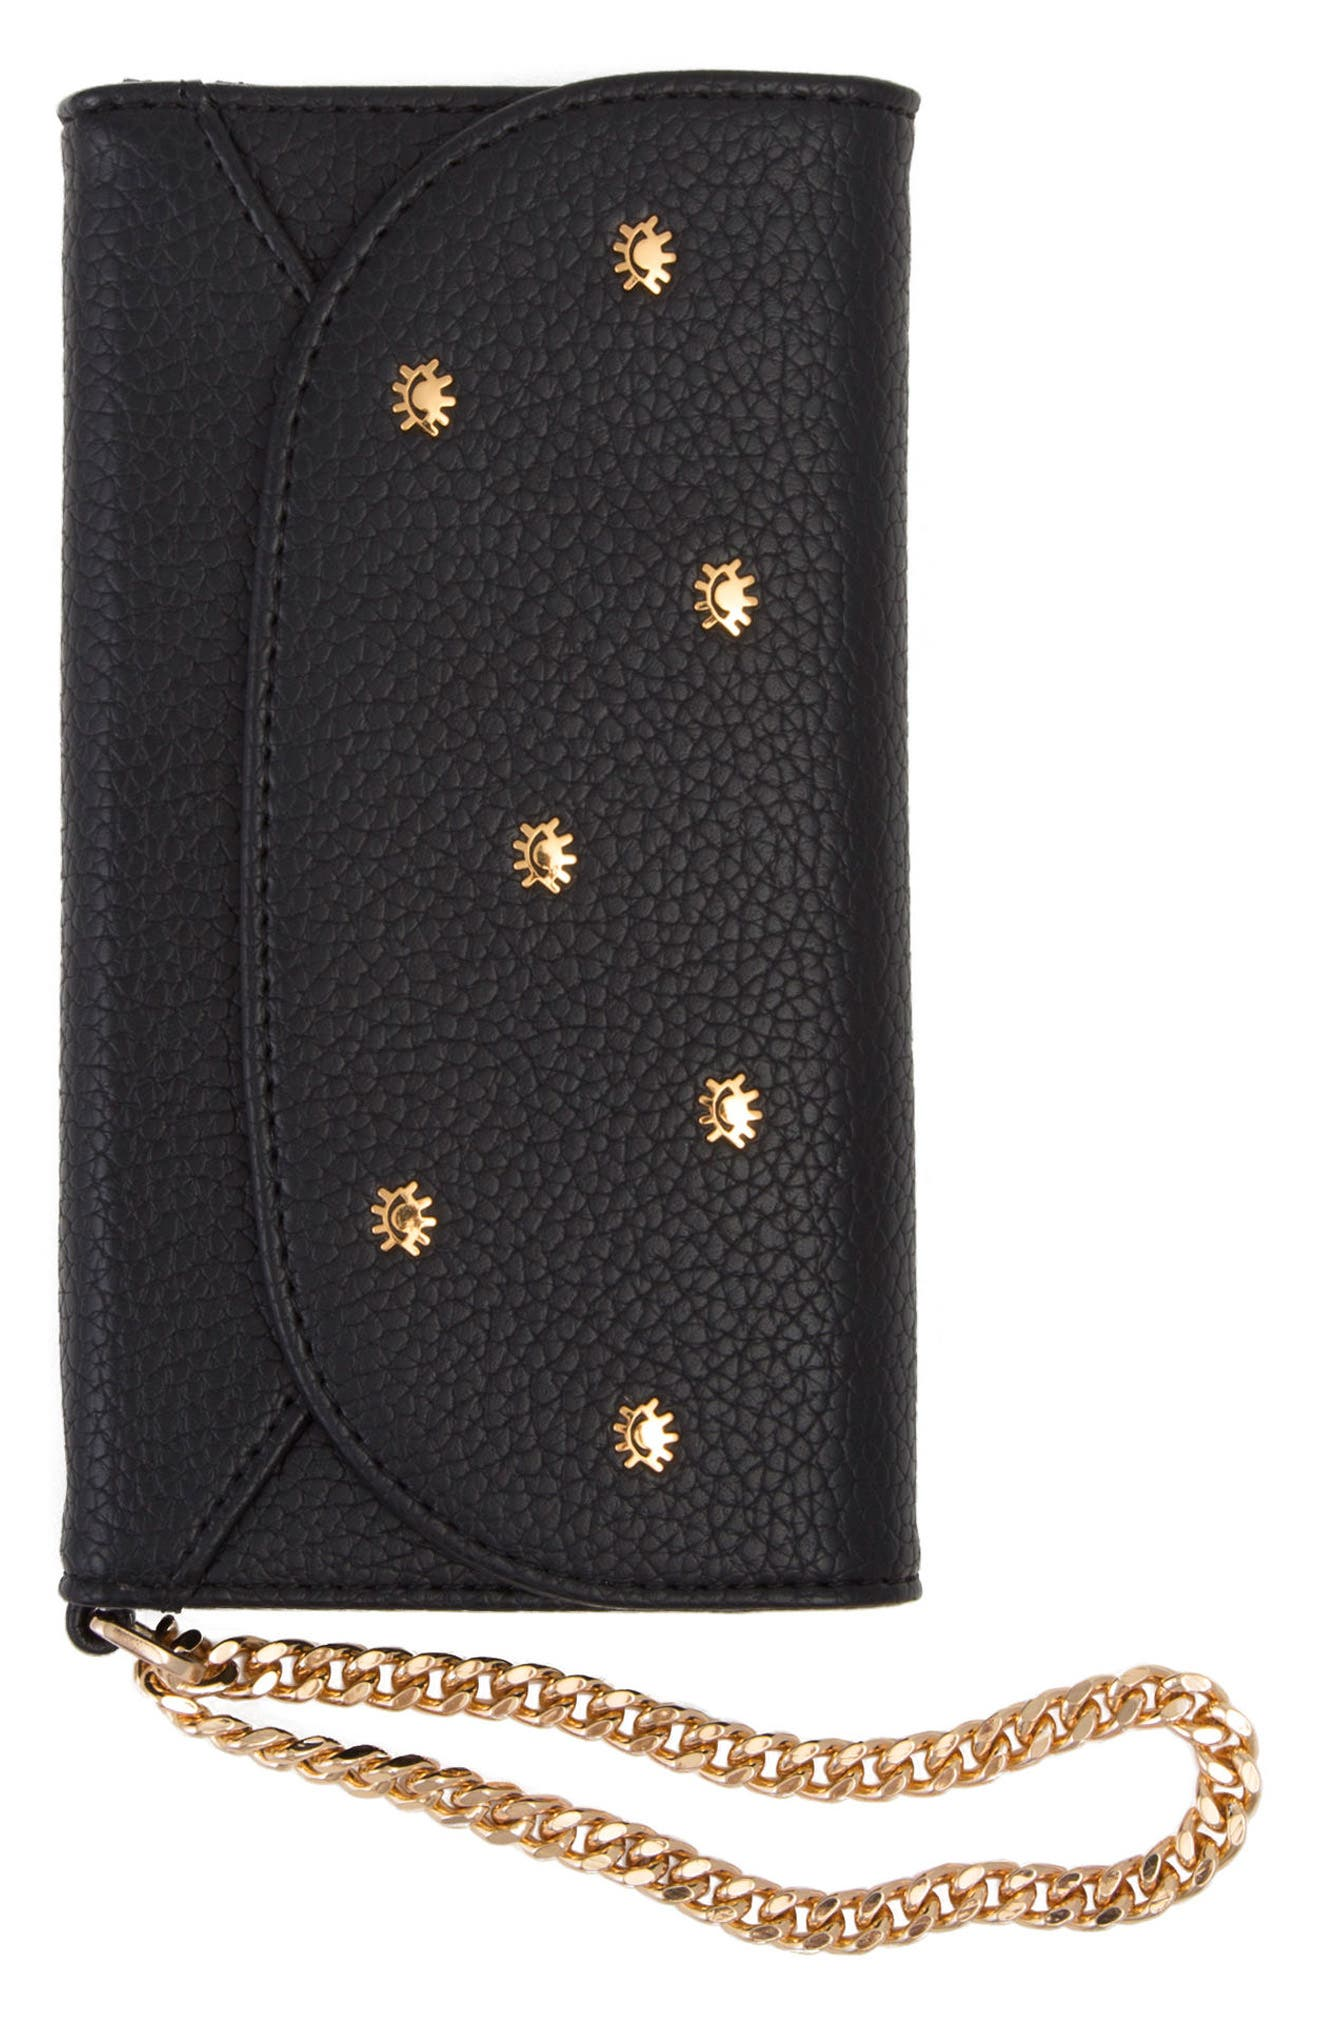 Alternate Image 1 Selected - Sonix Cosmic Stud iPhone X Faux Leather Wristlet